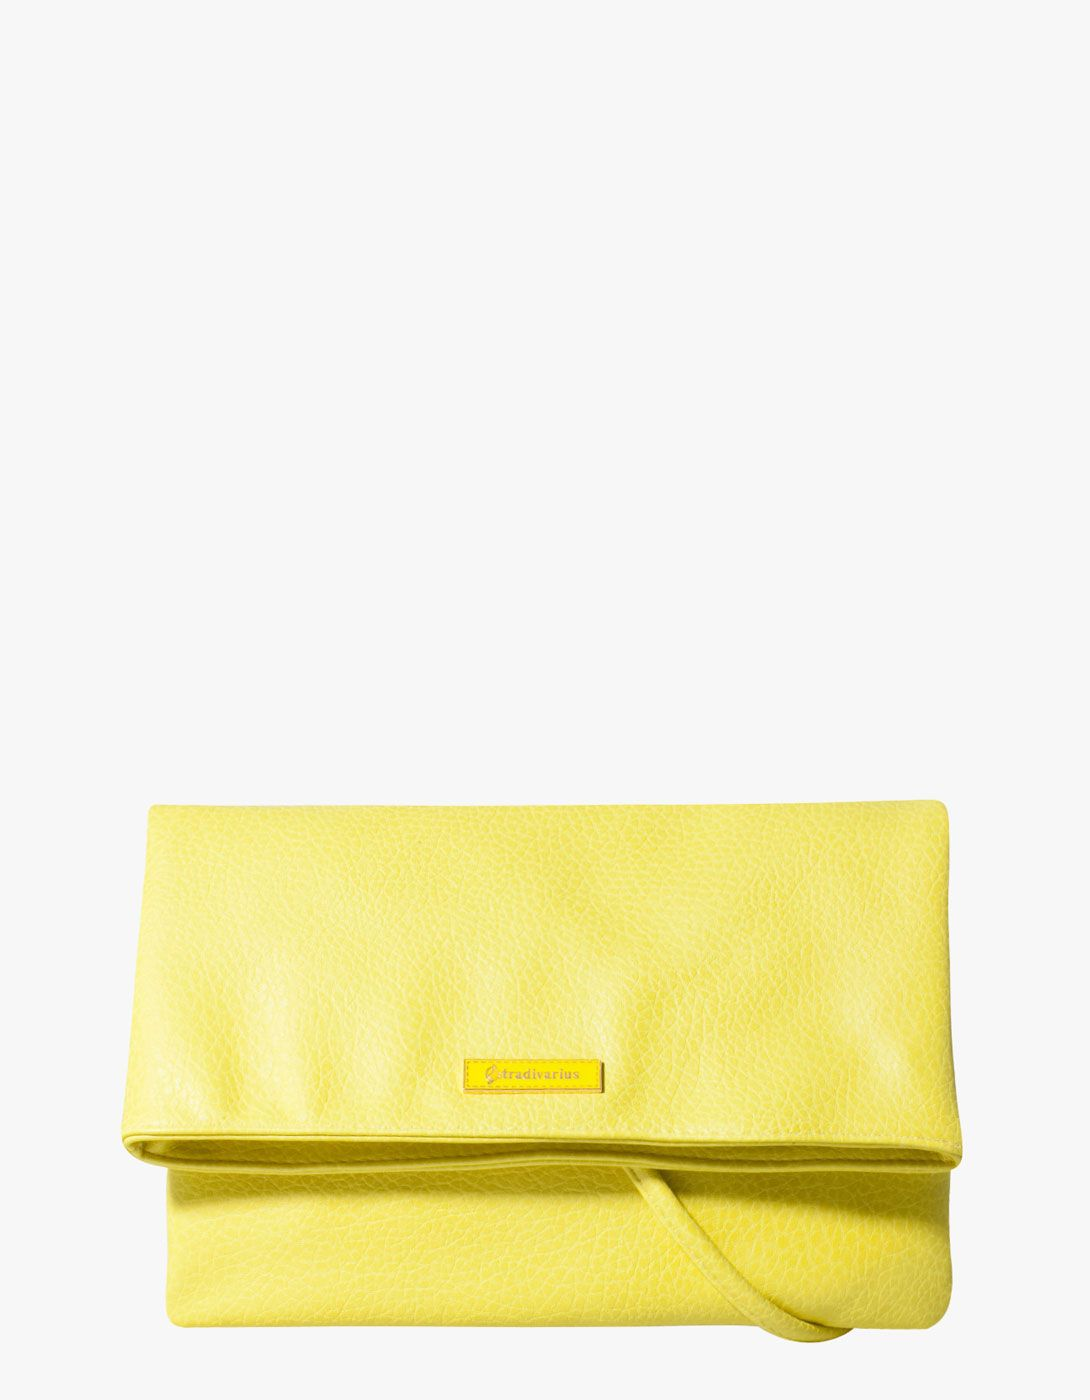 Neon handbag by Stradivarius